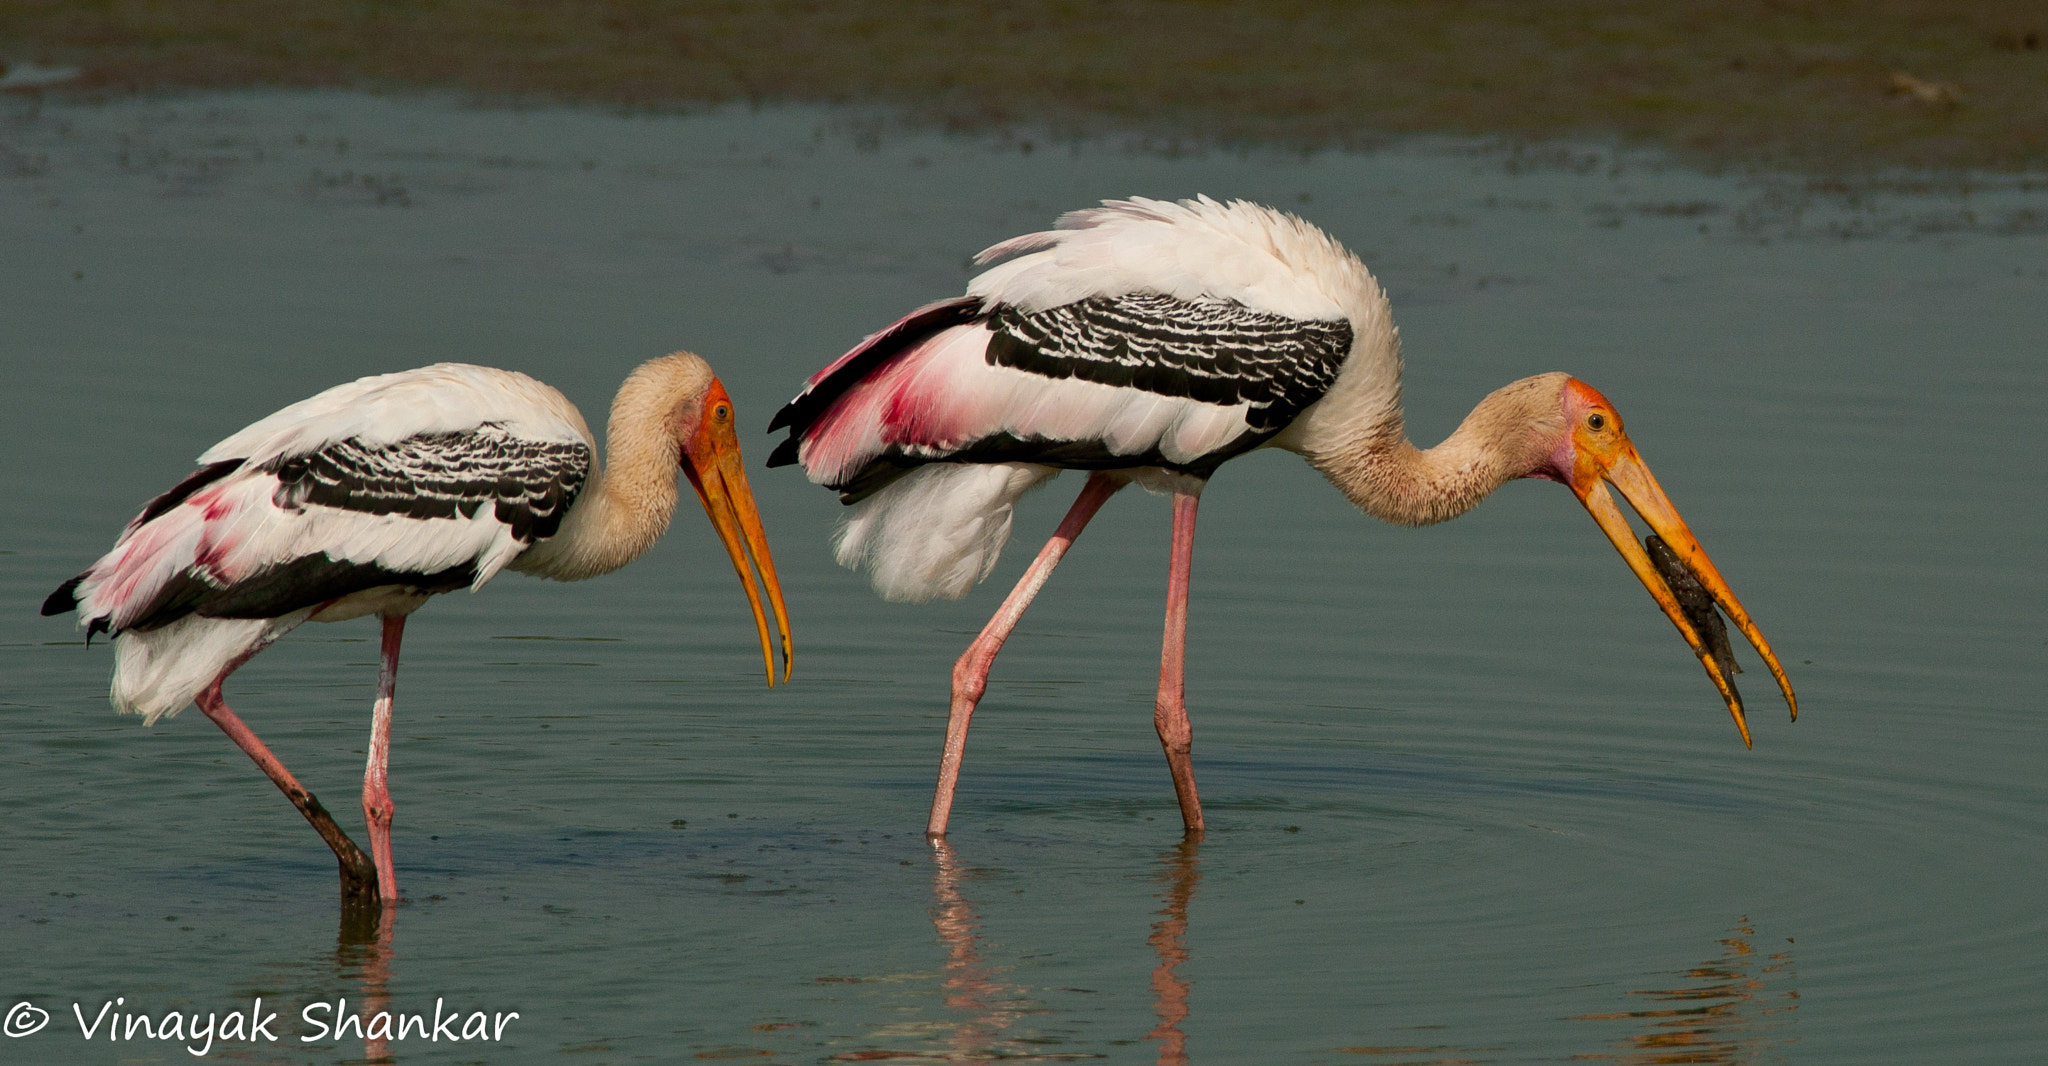 Photograph Painted Storks by Vinayak Shankar on 500px